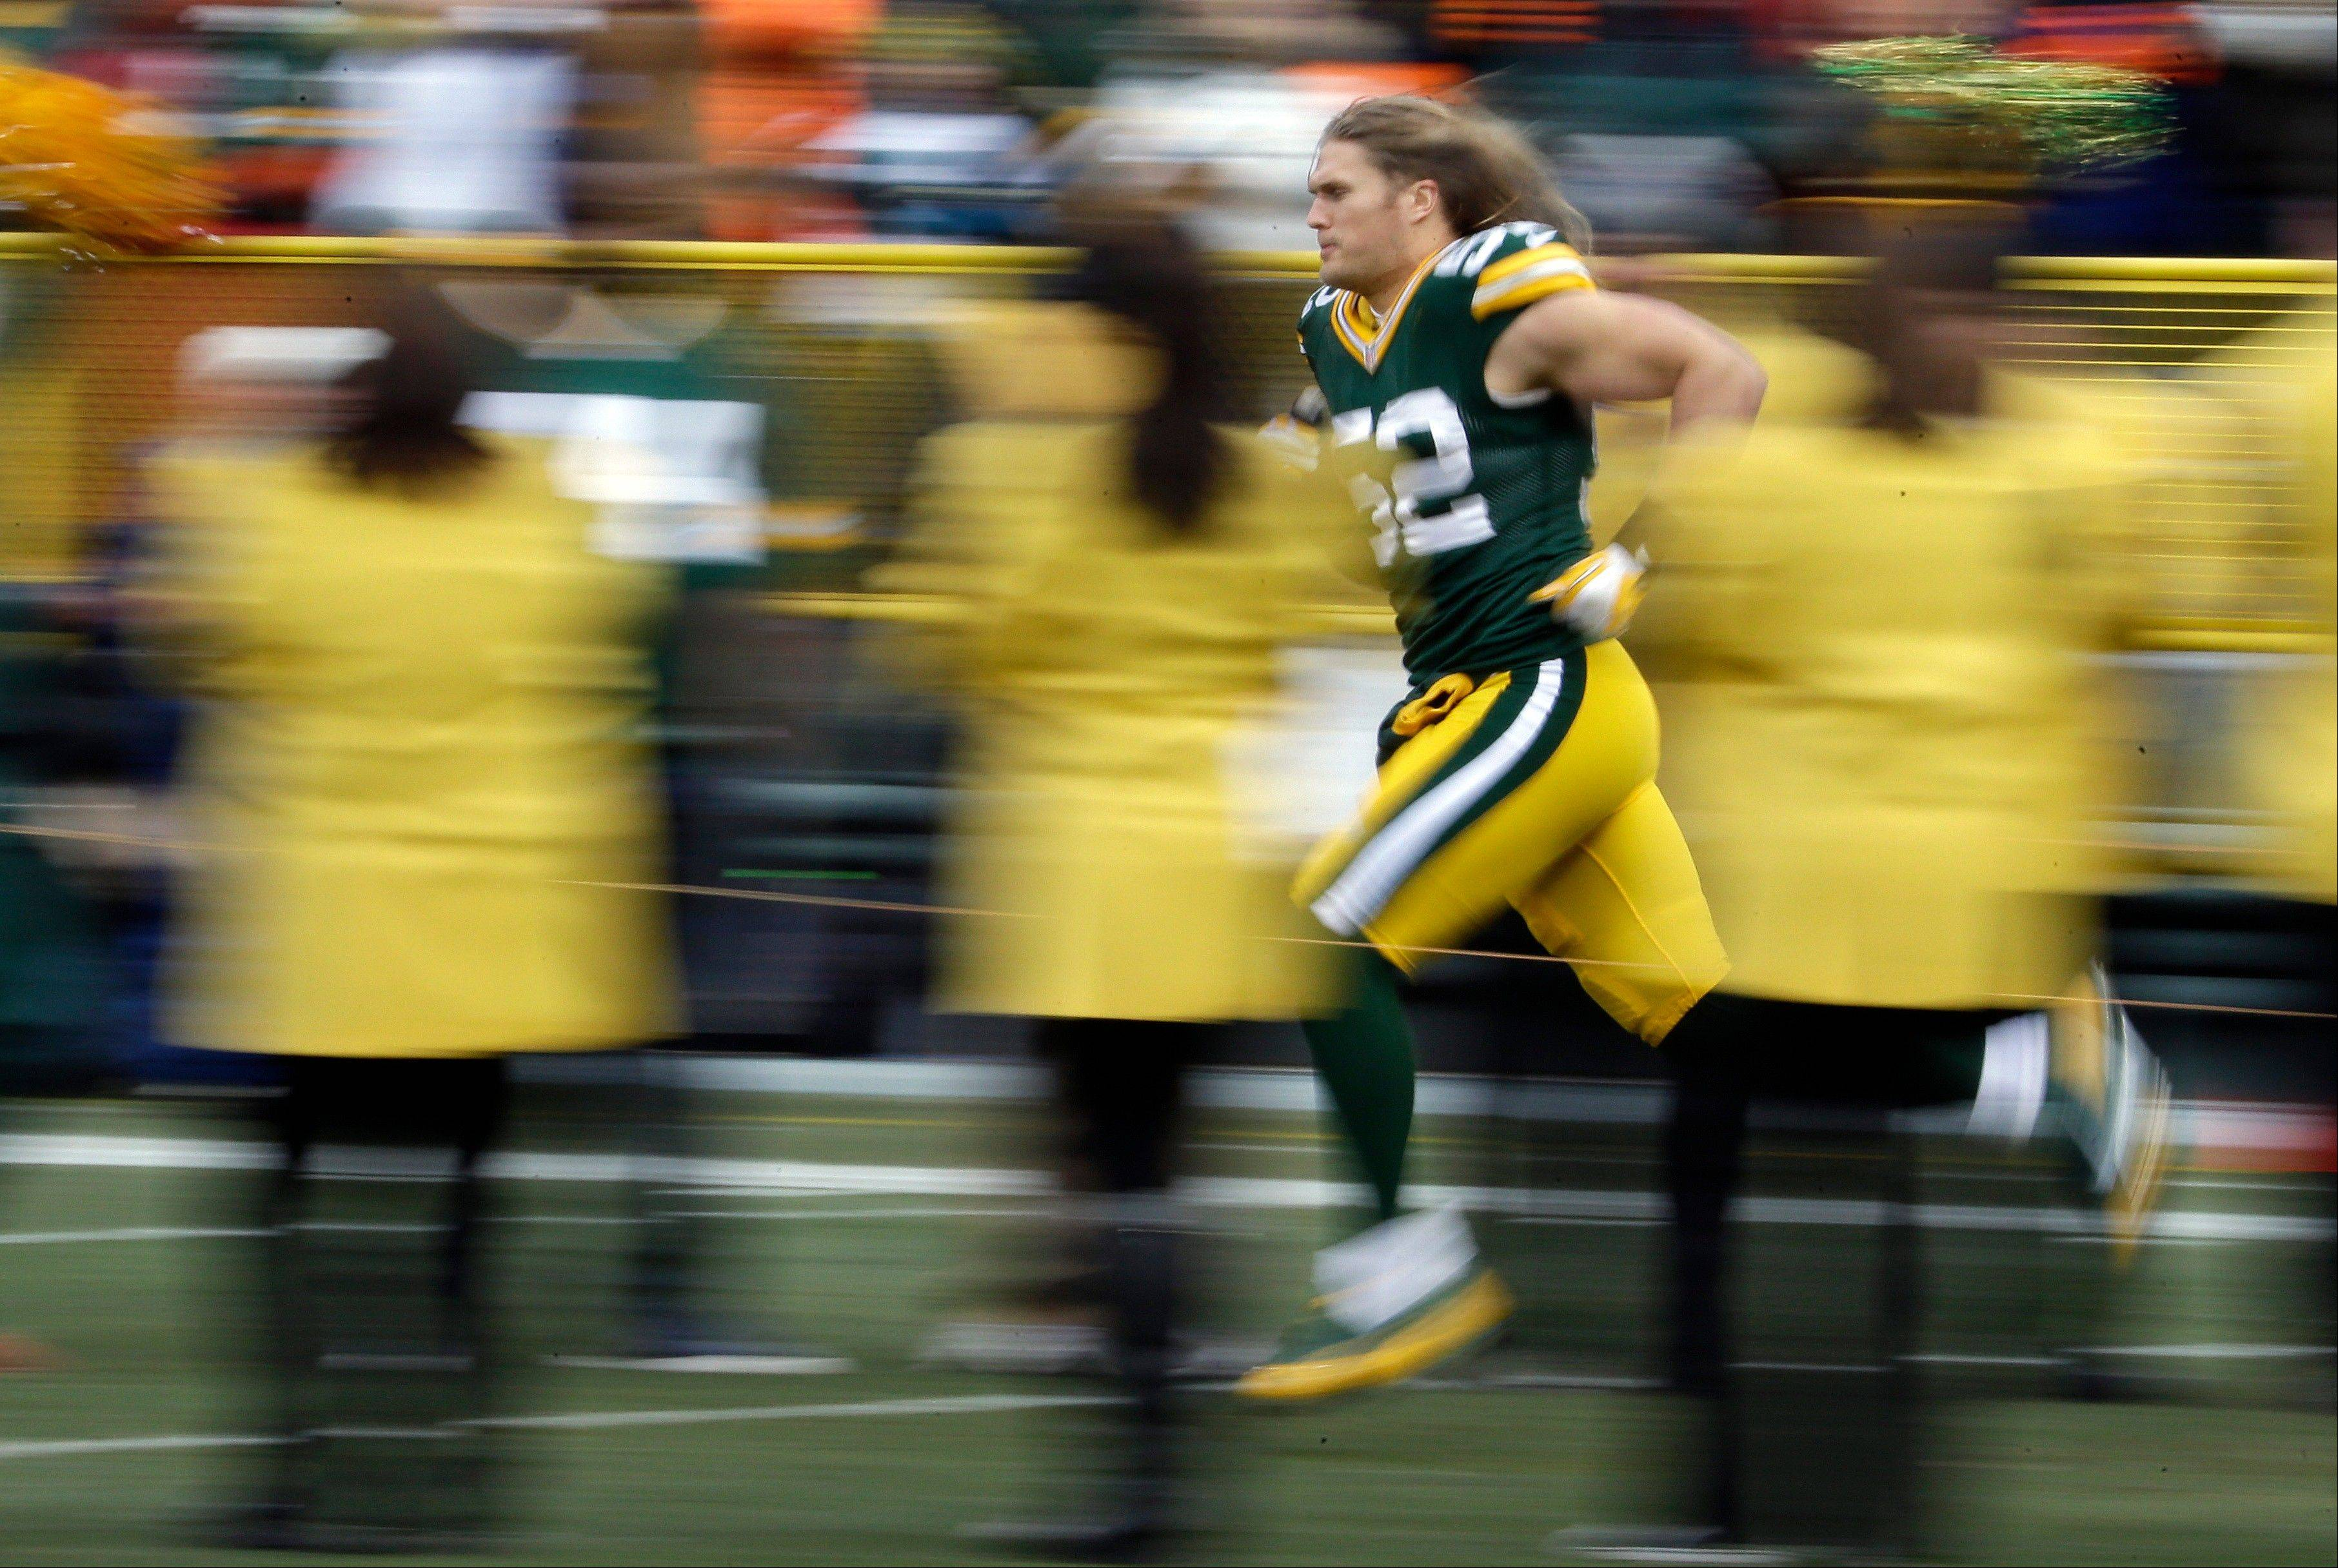 Green Bay Packers� Clay Matthews is introduced before the first half of an NFL football game against the Minnesota Vikings Sunday, Nov. 24, 2013, in Green Bay, Wis.